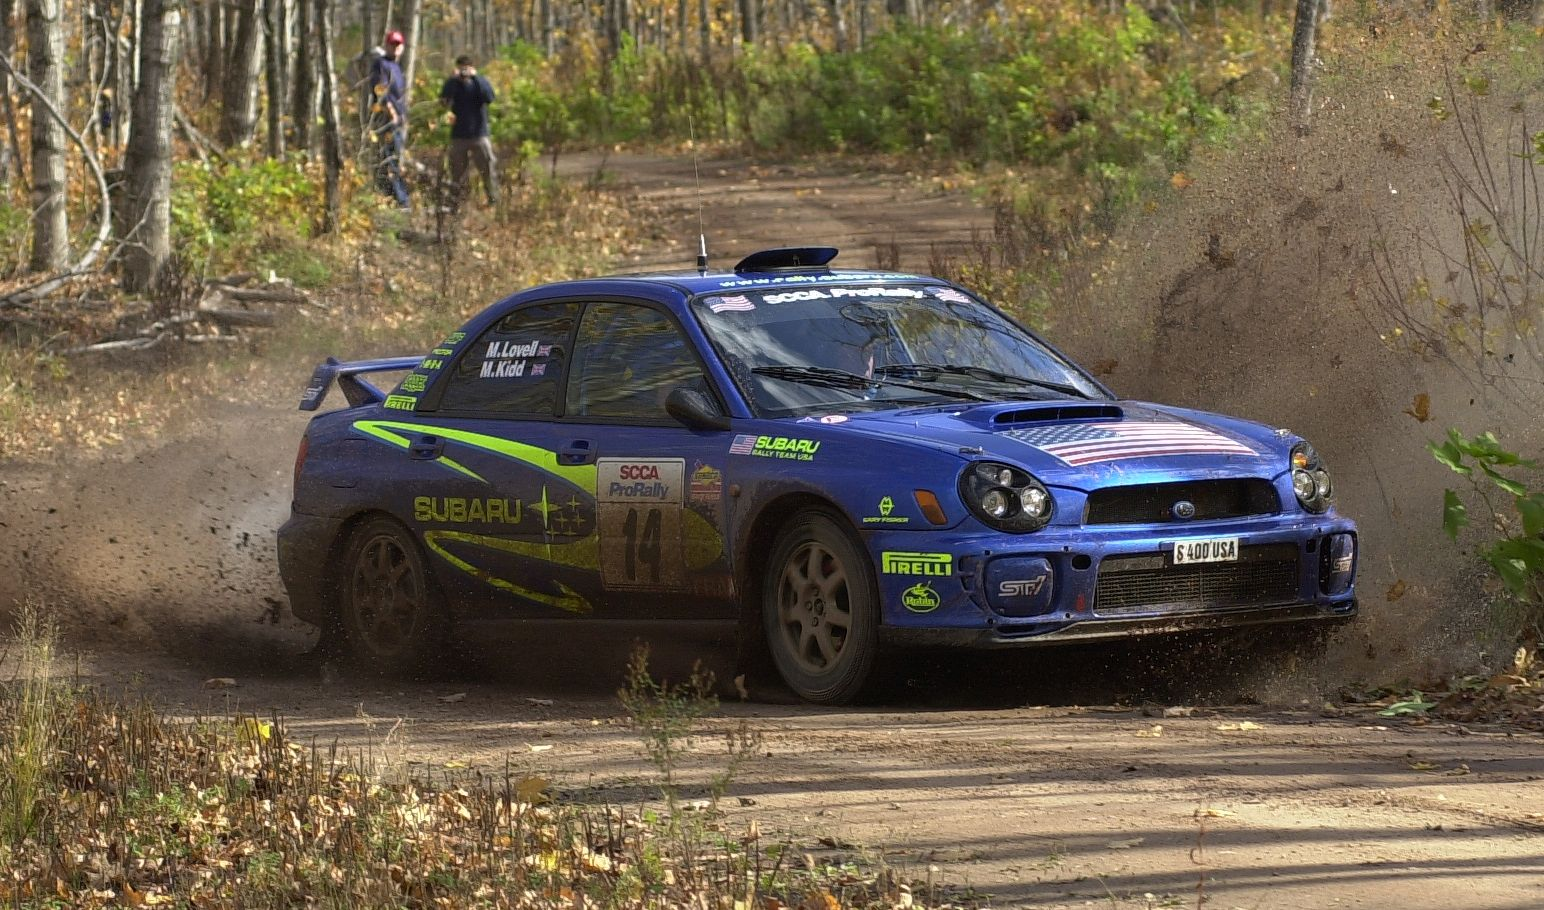 Aero Review Of The Subaru Motorsport Usa Rally Experience The Early Years Wrcwings